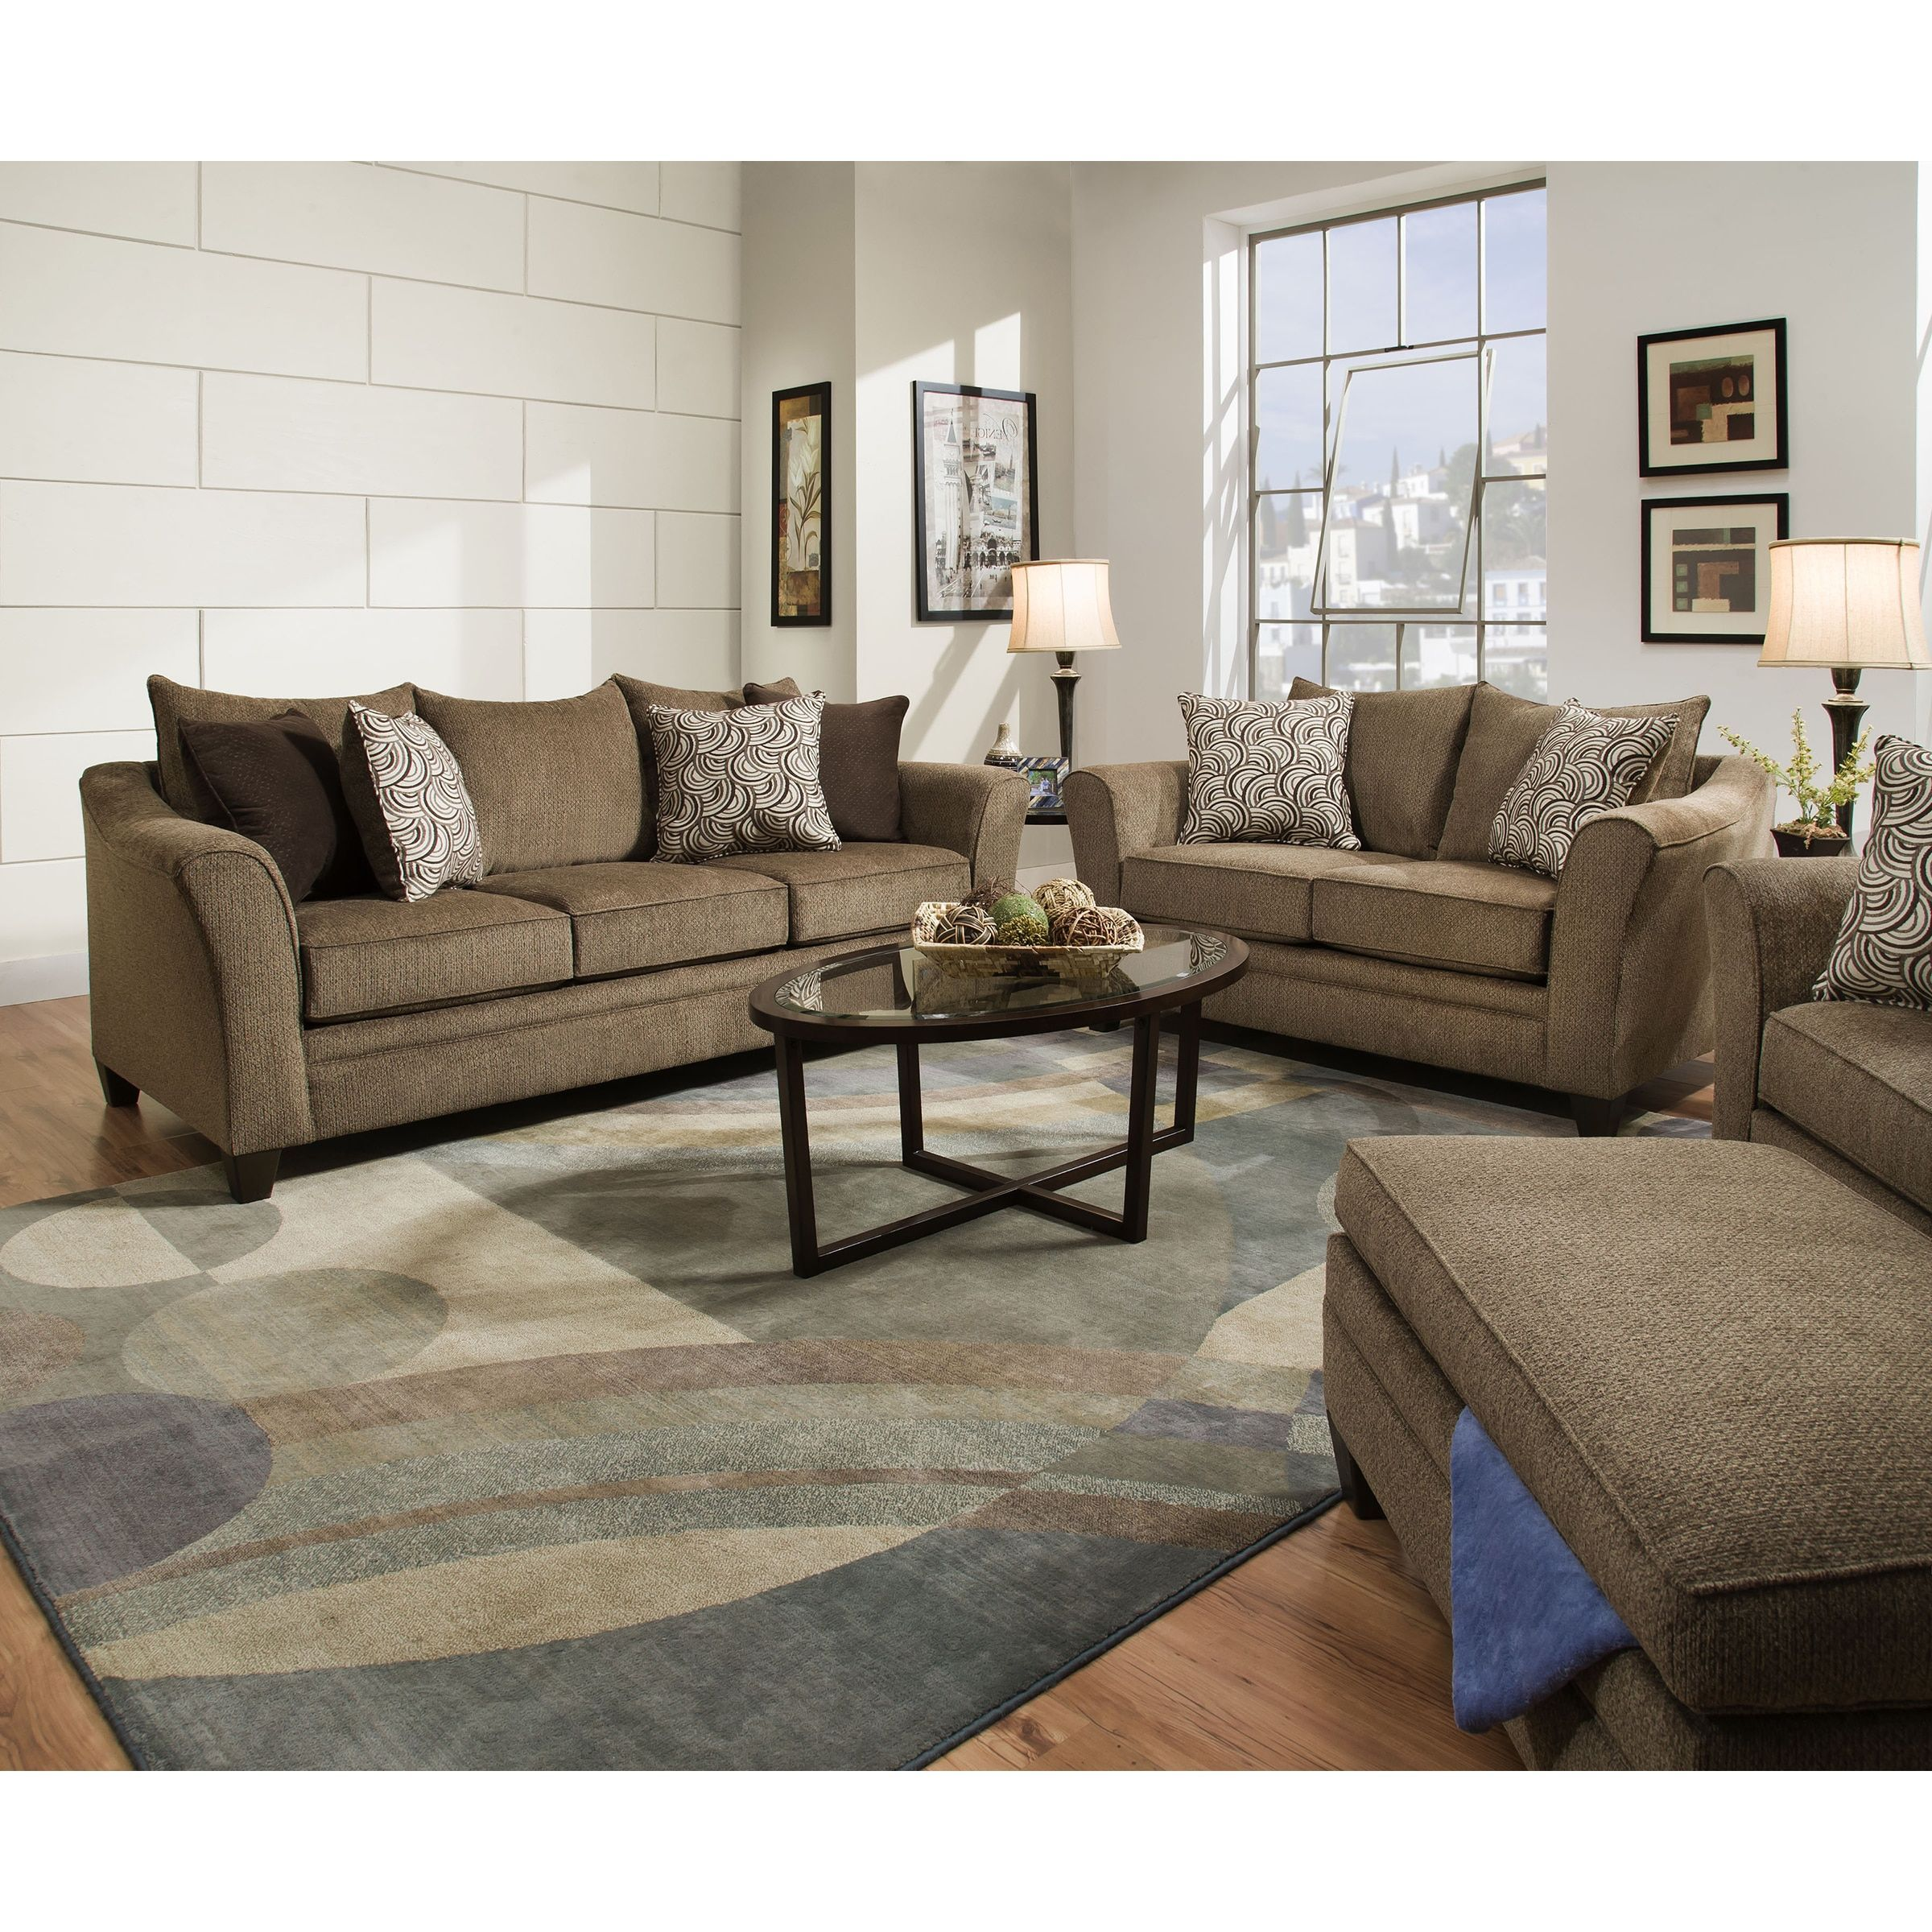 Simmons upholstery albany truffle queen sleeper sofa sleeper sofa tan fabric